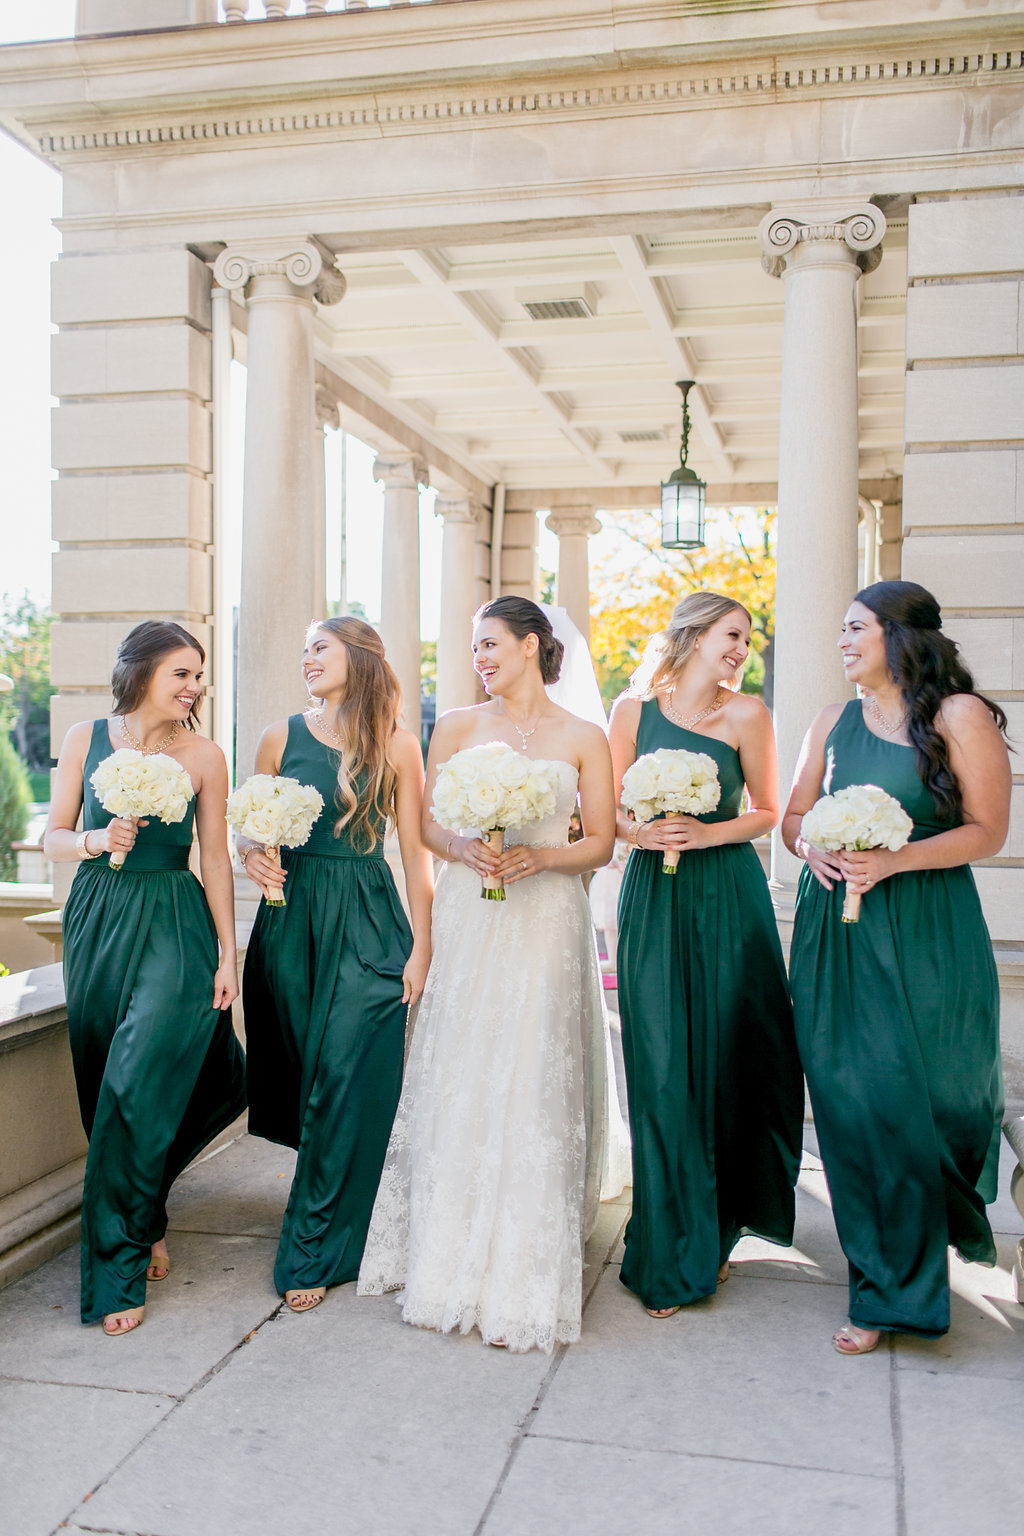 Emerald Green and Gold Semple Mansion Wedding Bridesmaid Dresses